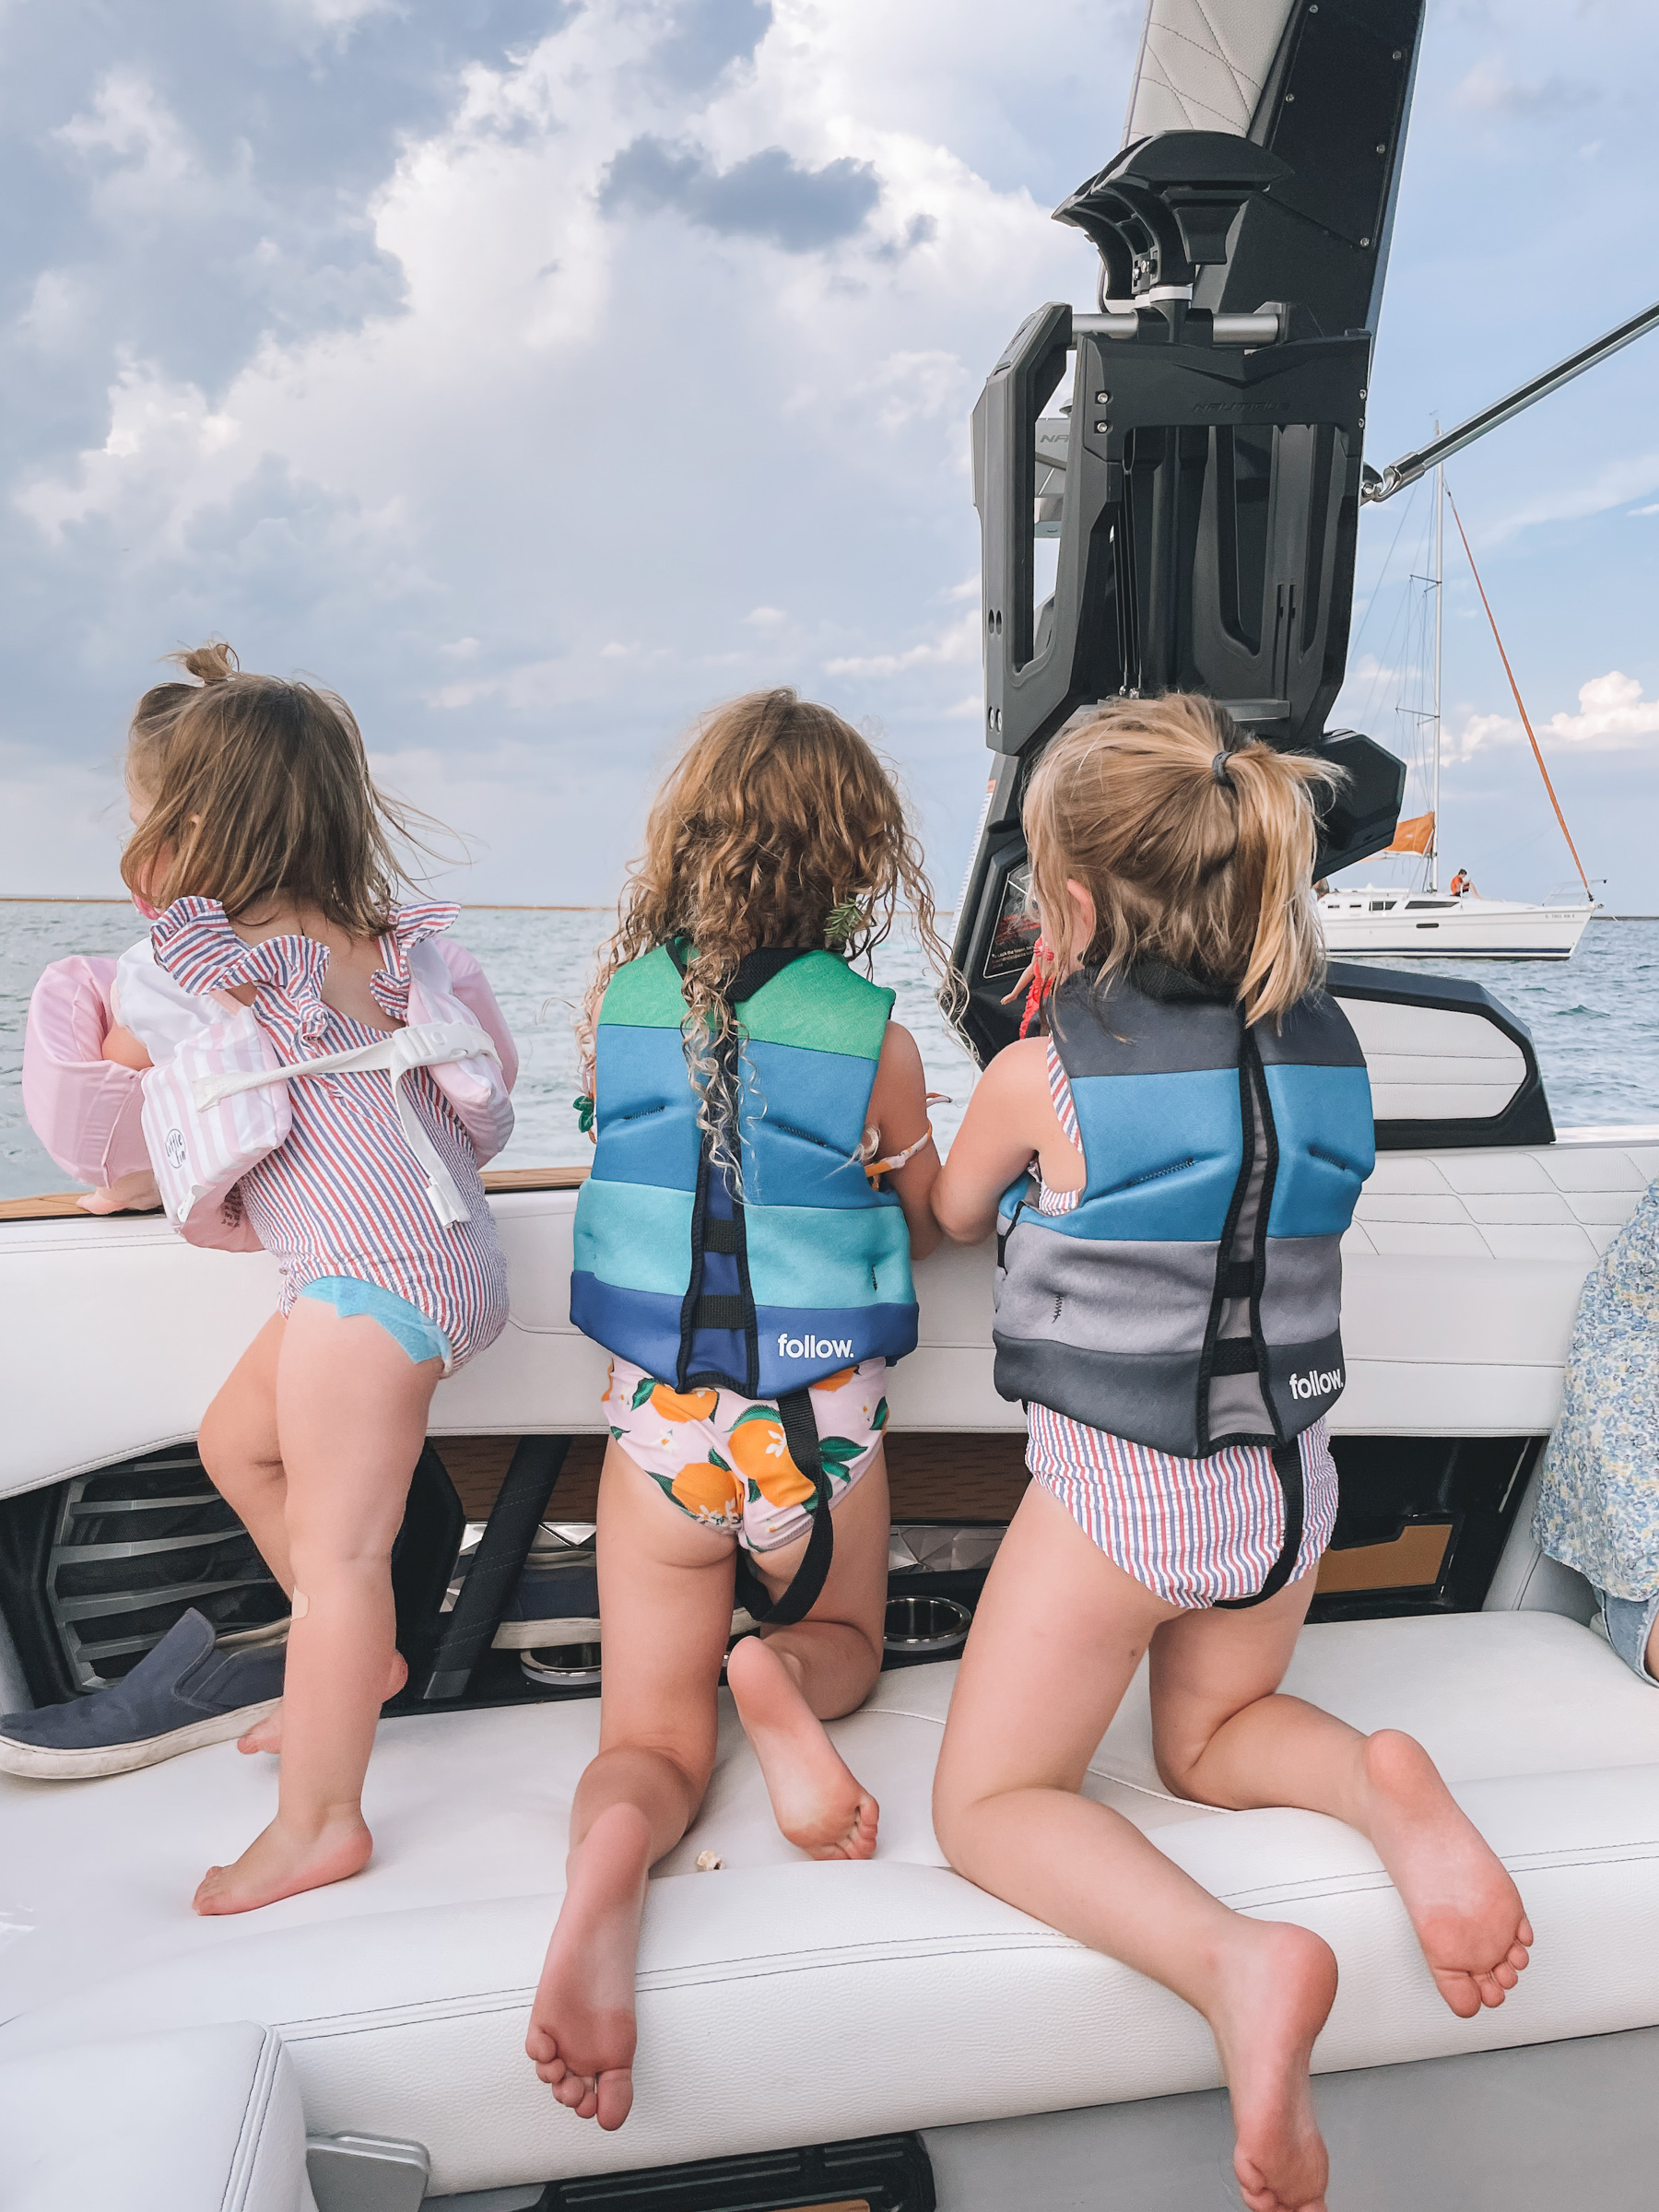 Diversey Harbor Chicago Boating Experience with kids